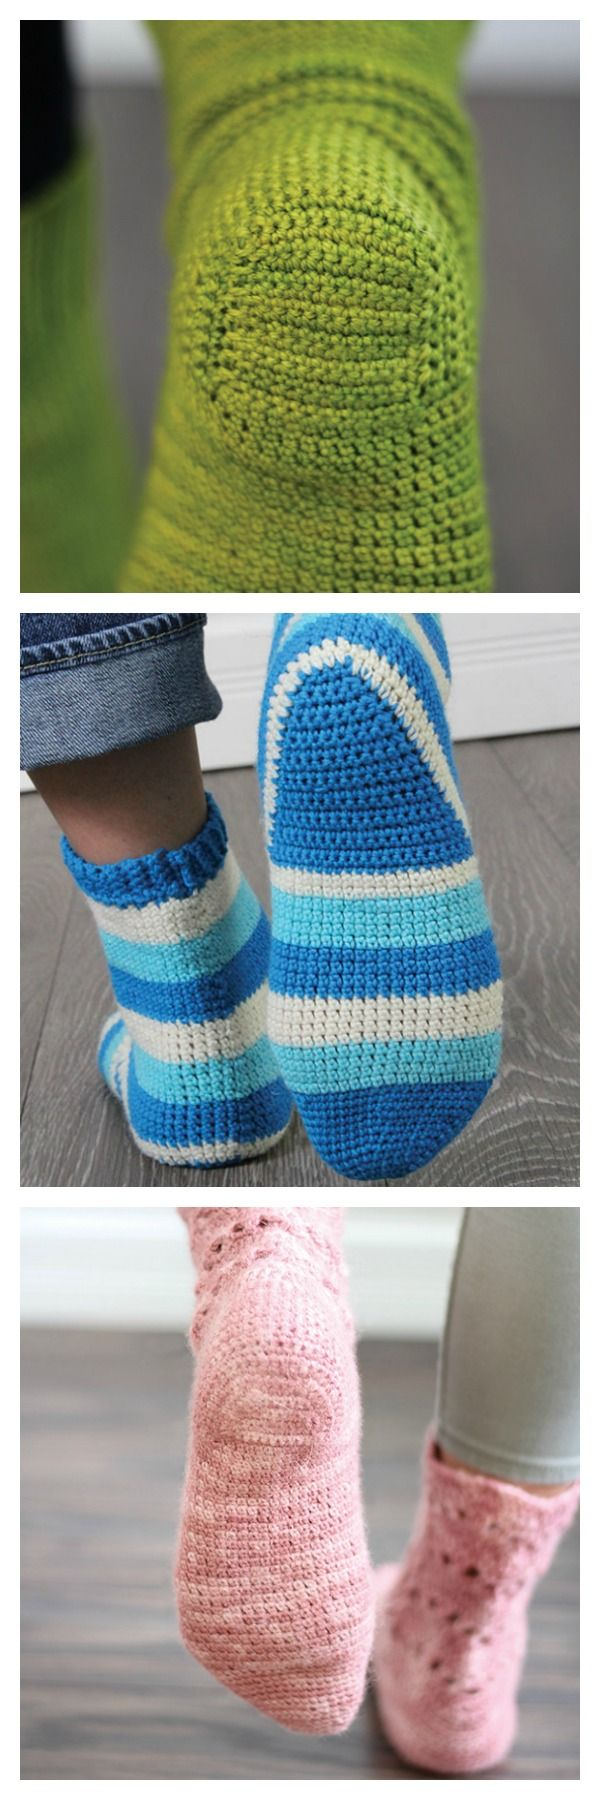 Best 25 crochet socks pattern ideas on pinterest crochet socks best 25 crochet socks pattern ideas on pinterest crochet socks crochet slipper boots and sat free bankloansurffo Image collections